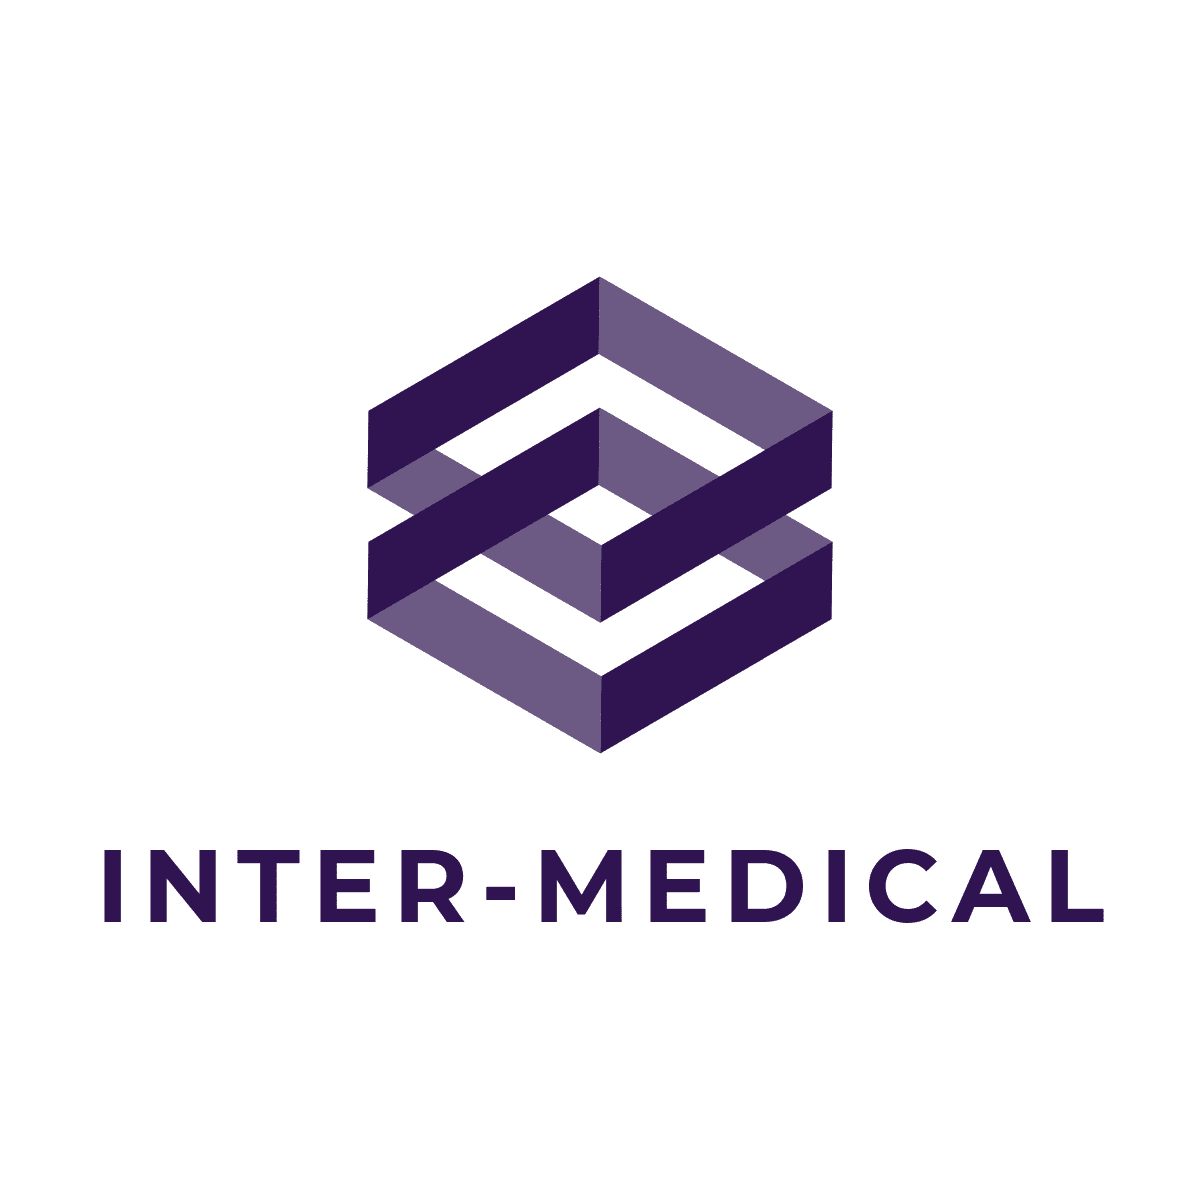 Inter-Medical AS